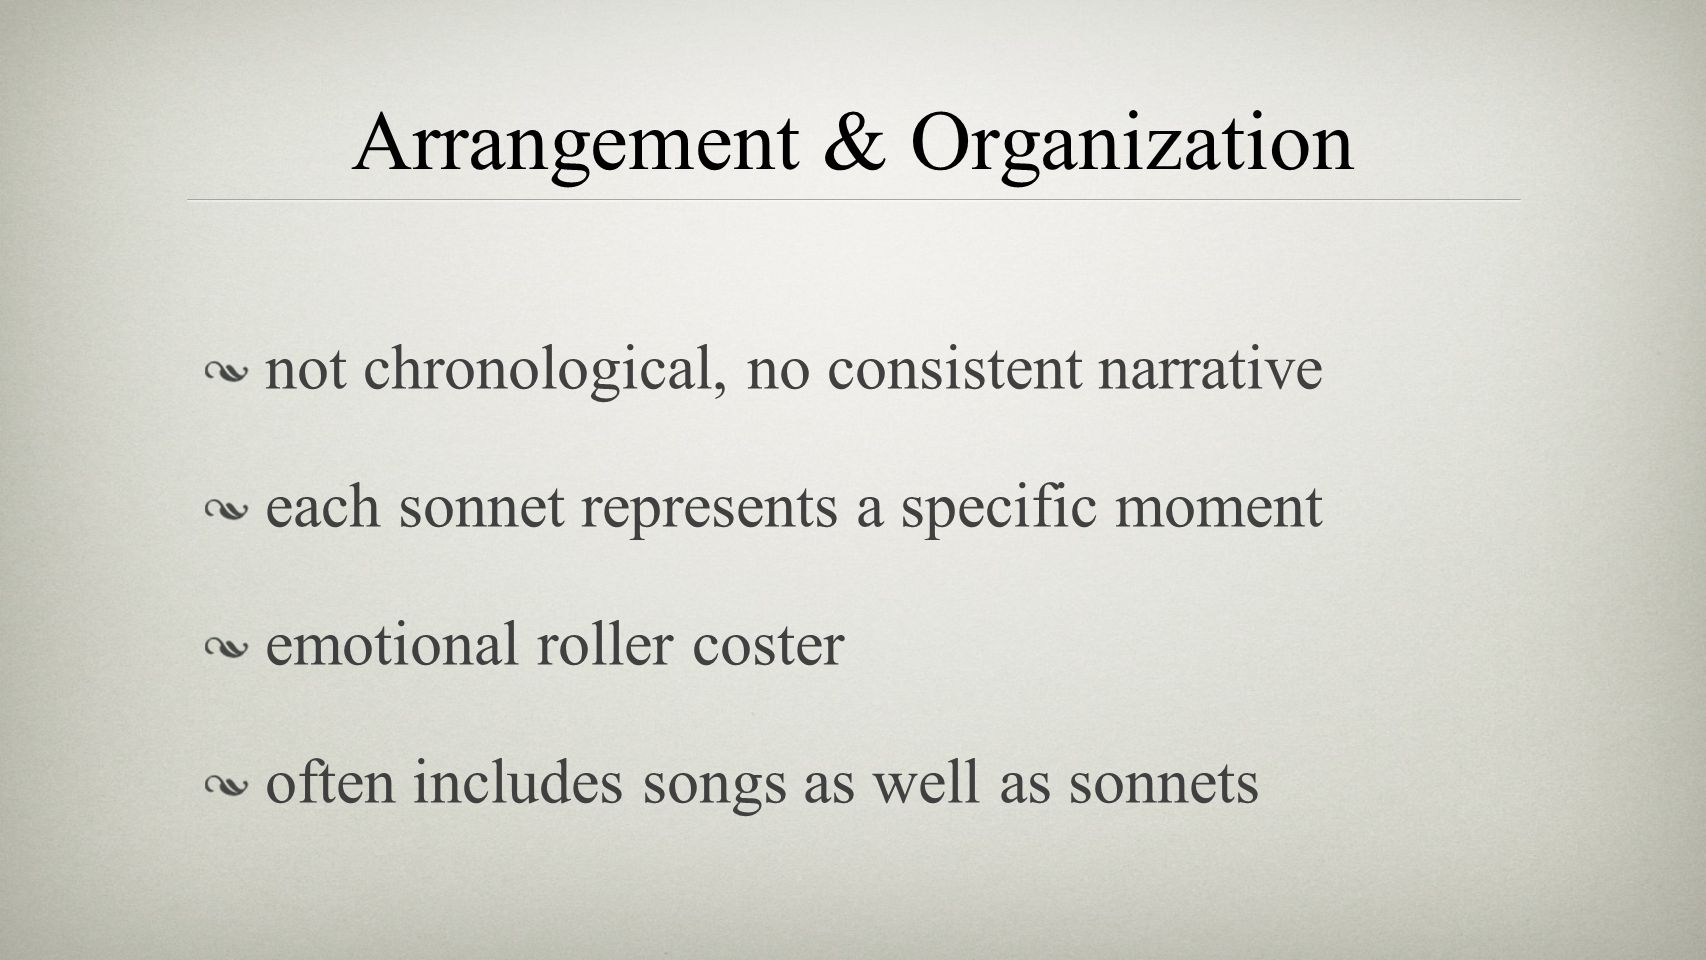 Arrangement & Organization not chronological, no consistent narrative each sonnet represents a specific moment emotional roller coster often includes songs as well as sonnets